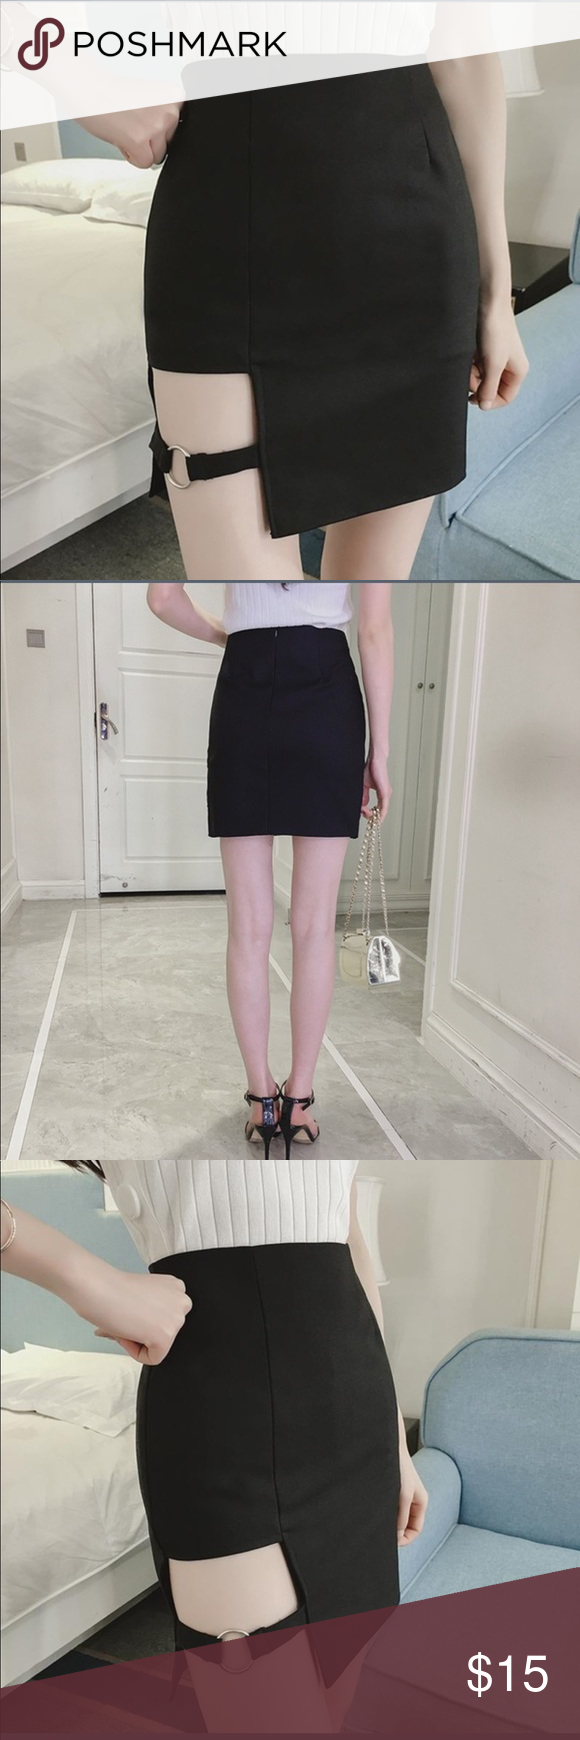 4d4d15f48f NWT Black Cut Out Slit Buckle Mini Skirt Small Bought from Wish App, super  cute